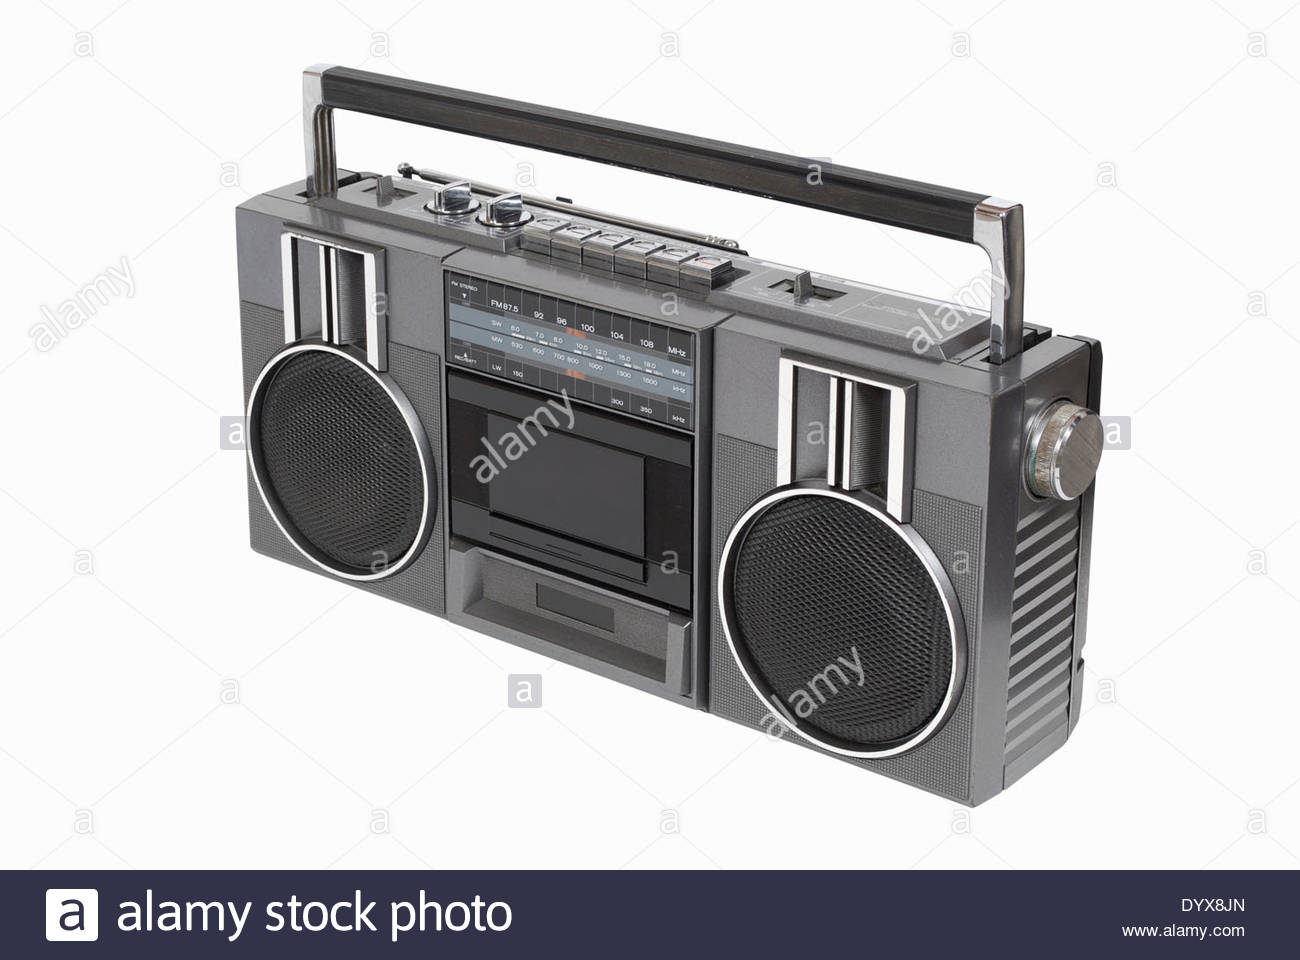 Retro portable radio cassette player from the 80's. Isolated on white with path - Stock Image